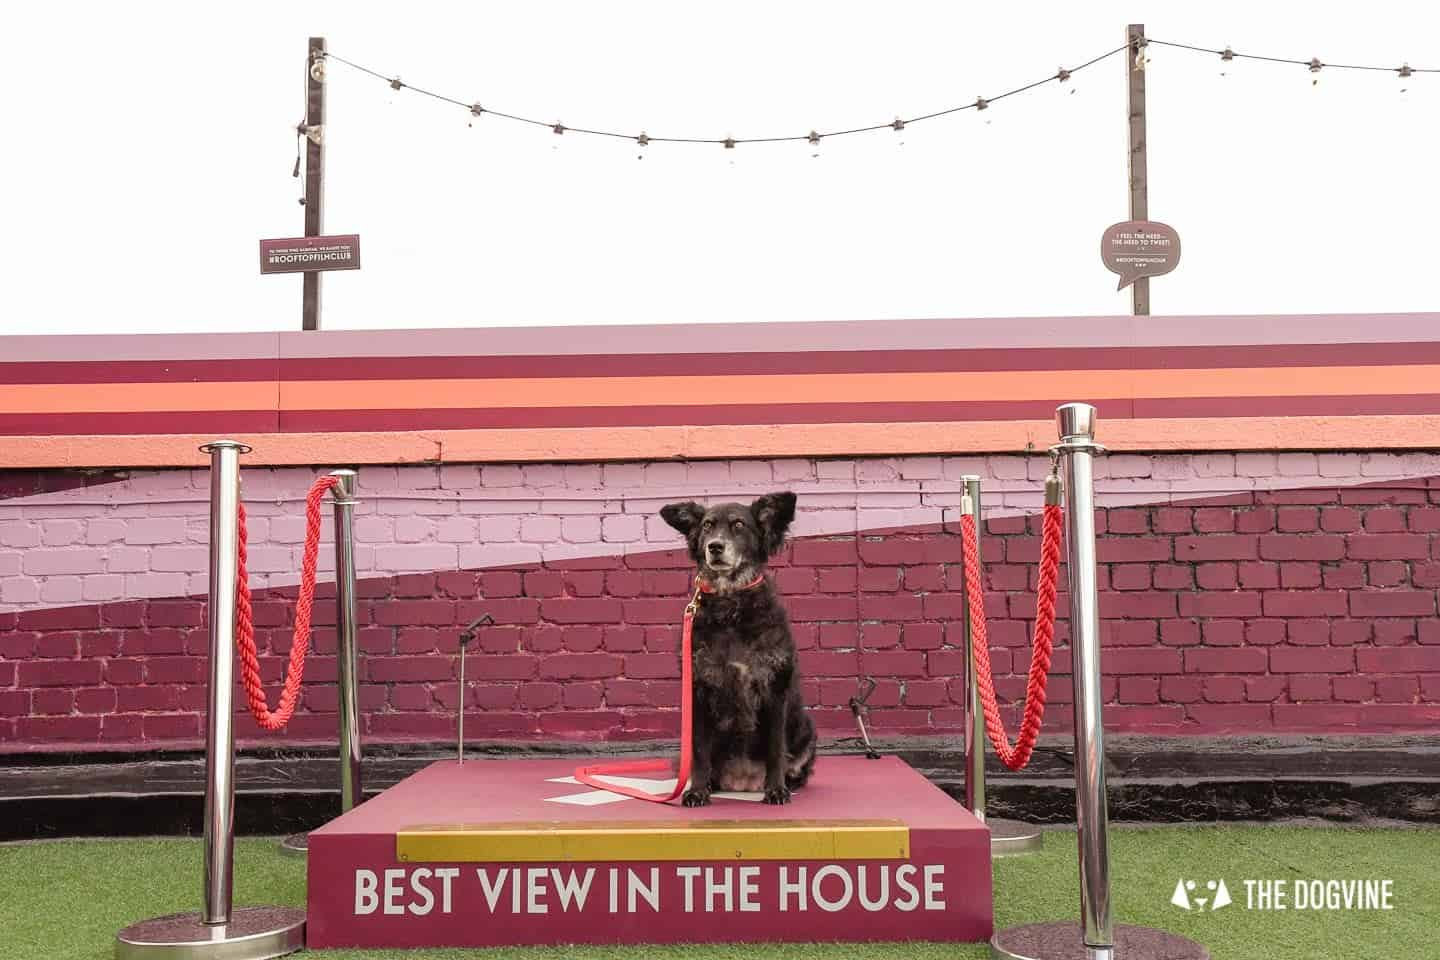 Spectacular Movie Moments at the Dog-friendly Rooftop Film Club 11